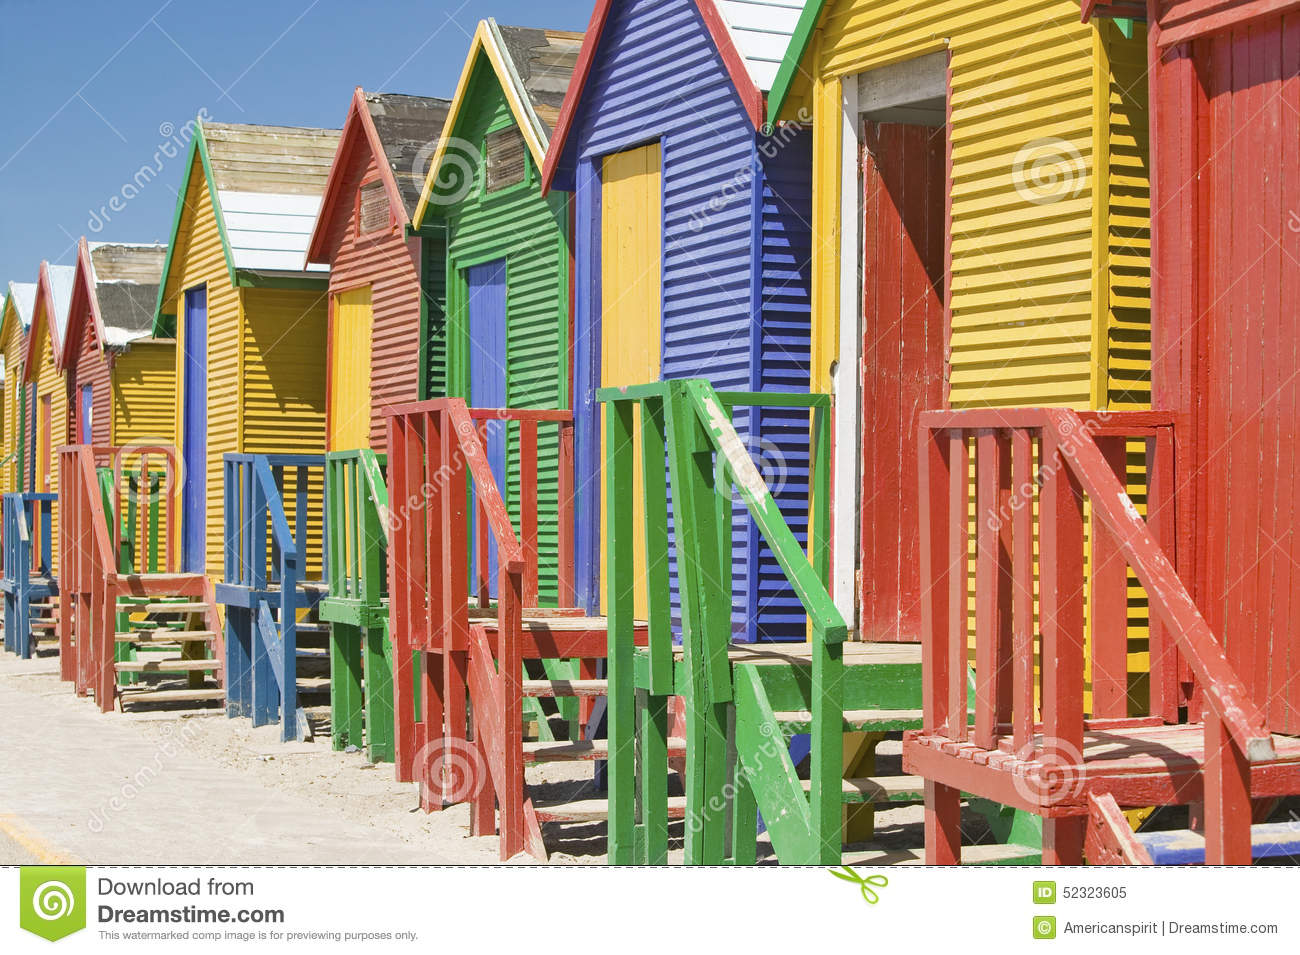 Bright Crayon-Colored Beach Huts at St James, False Bay on Indian Ocean, outside of Cape Town, South Africa